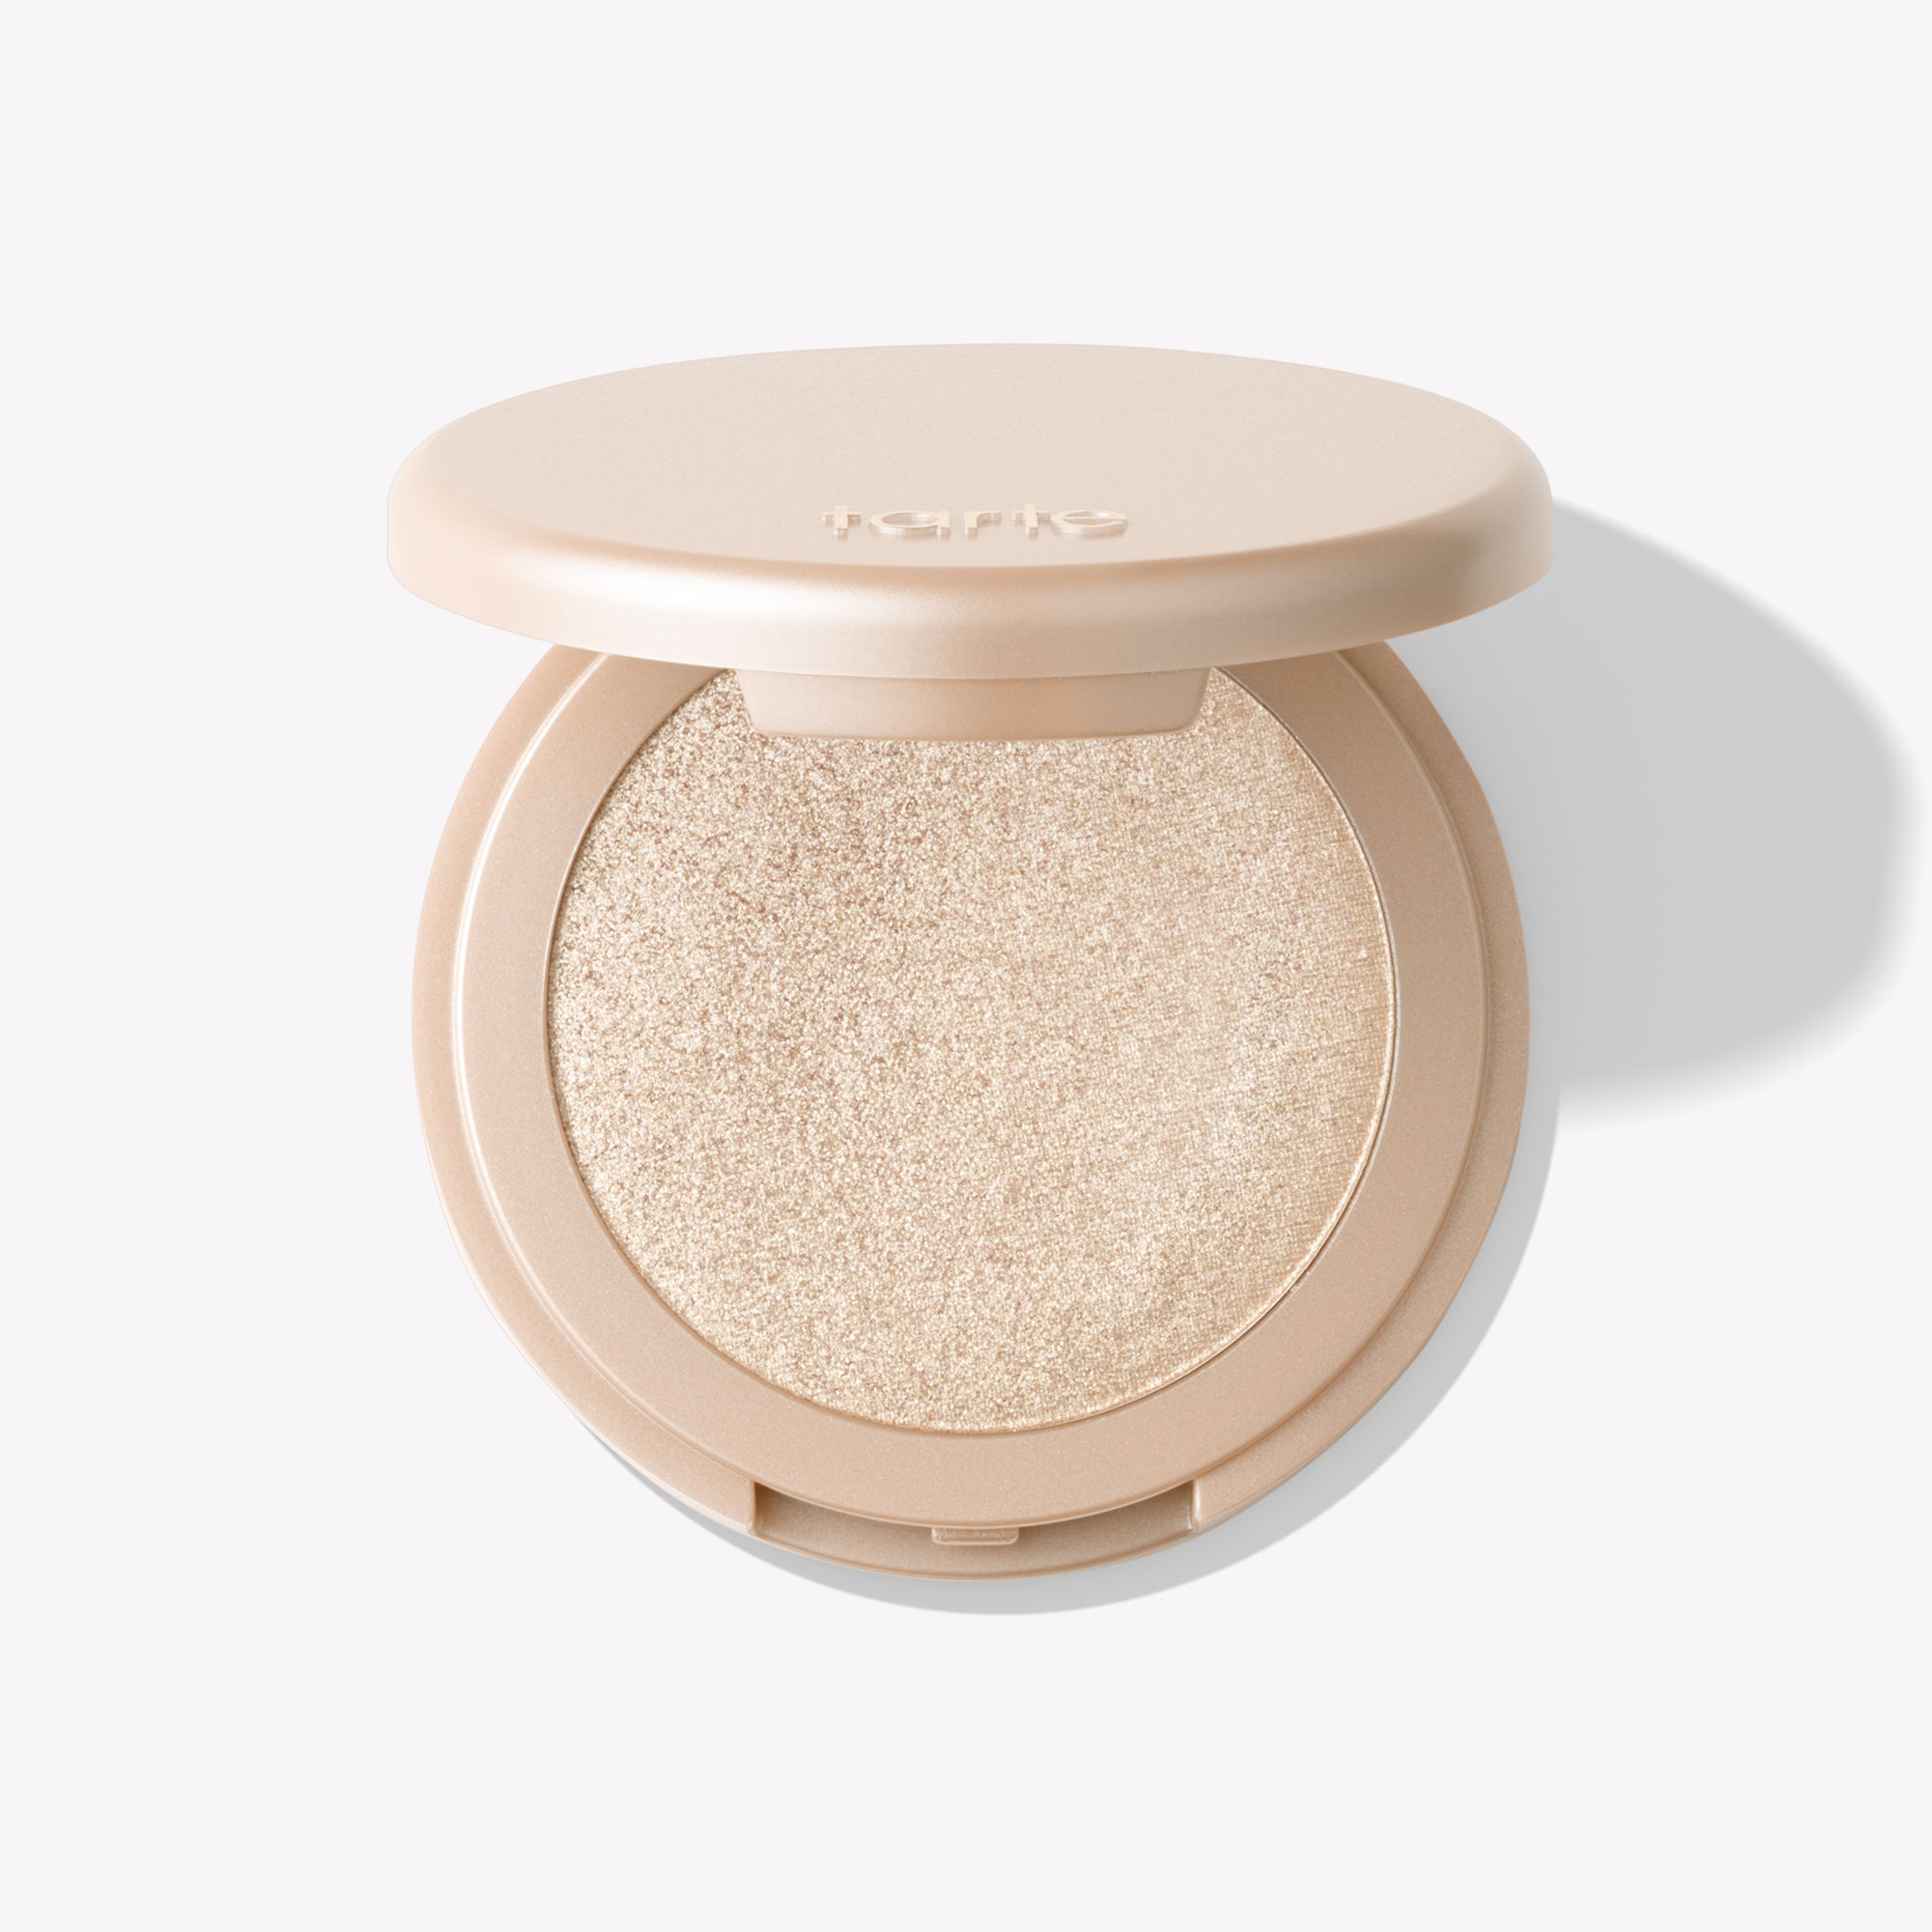 10 Fan-Favorite Tarte Products That Are on Sale Right Now